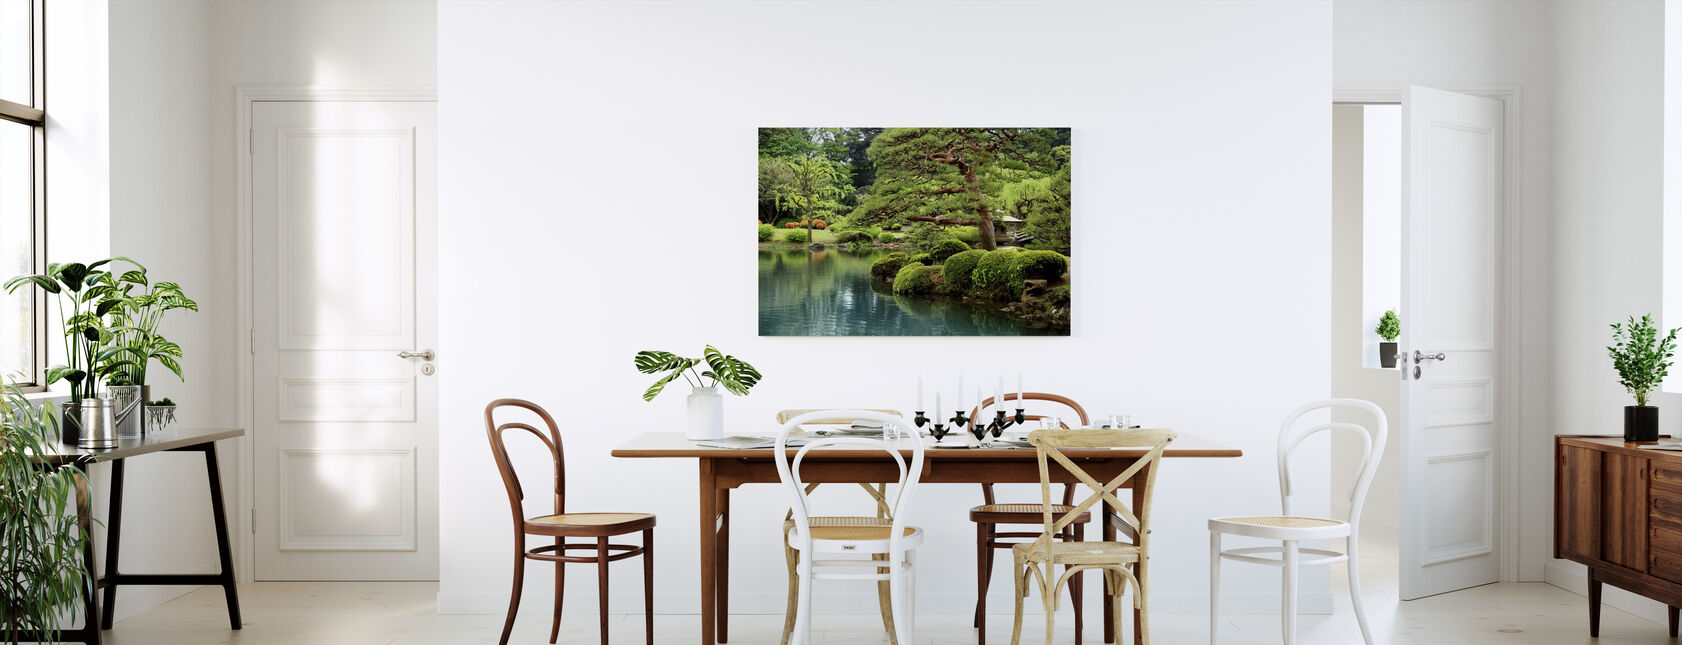 Calm Zen Lake and Bonsai Trees in Tokyo Garden - Canvas print - Kitchen